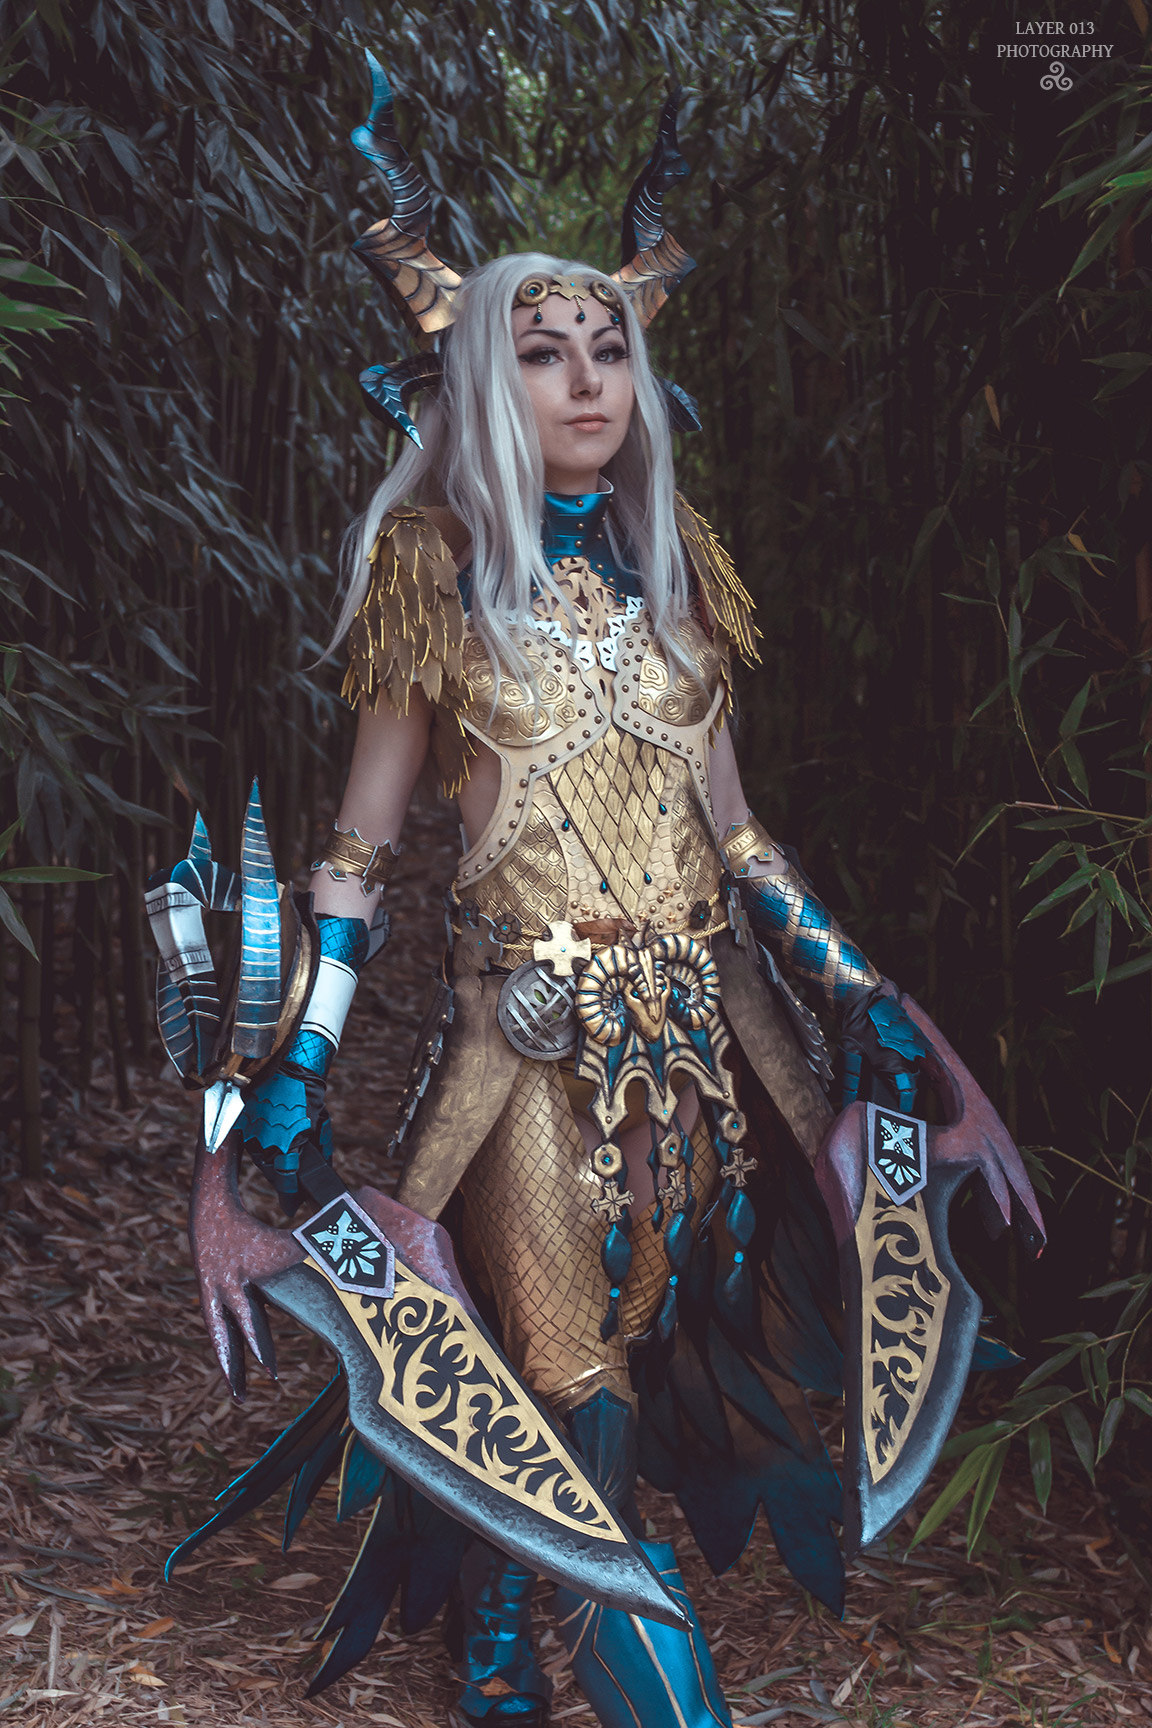 Kulve Taroth Armor Monster Hunter World By Layer013photography On Deviantart Please see kulve taroth beta armor set for another variation. kulve taroth armor monster hunter world by layer013photography on deviantart